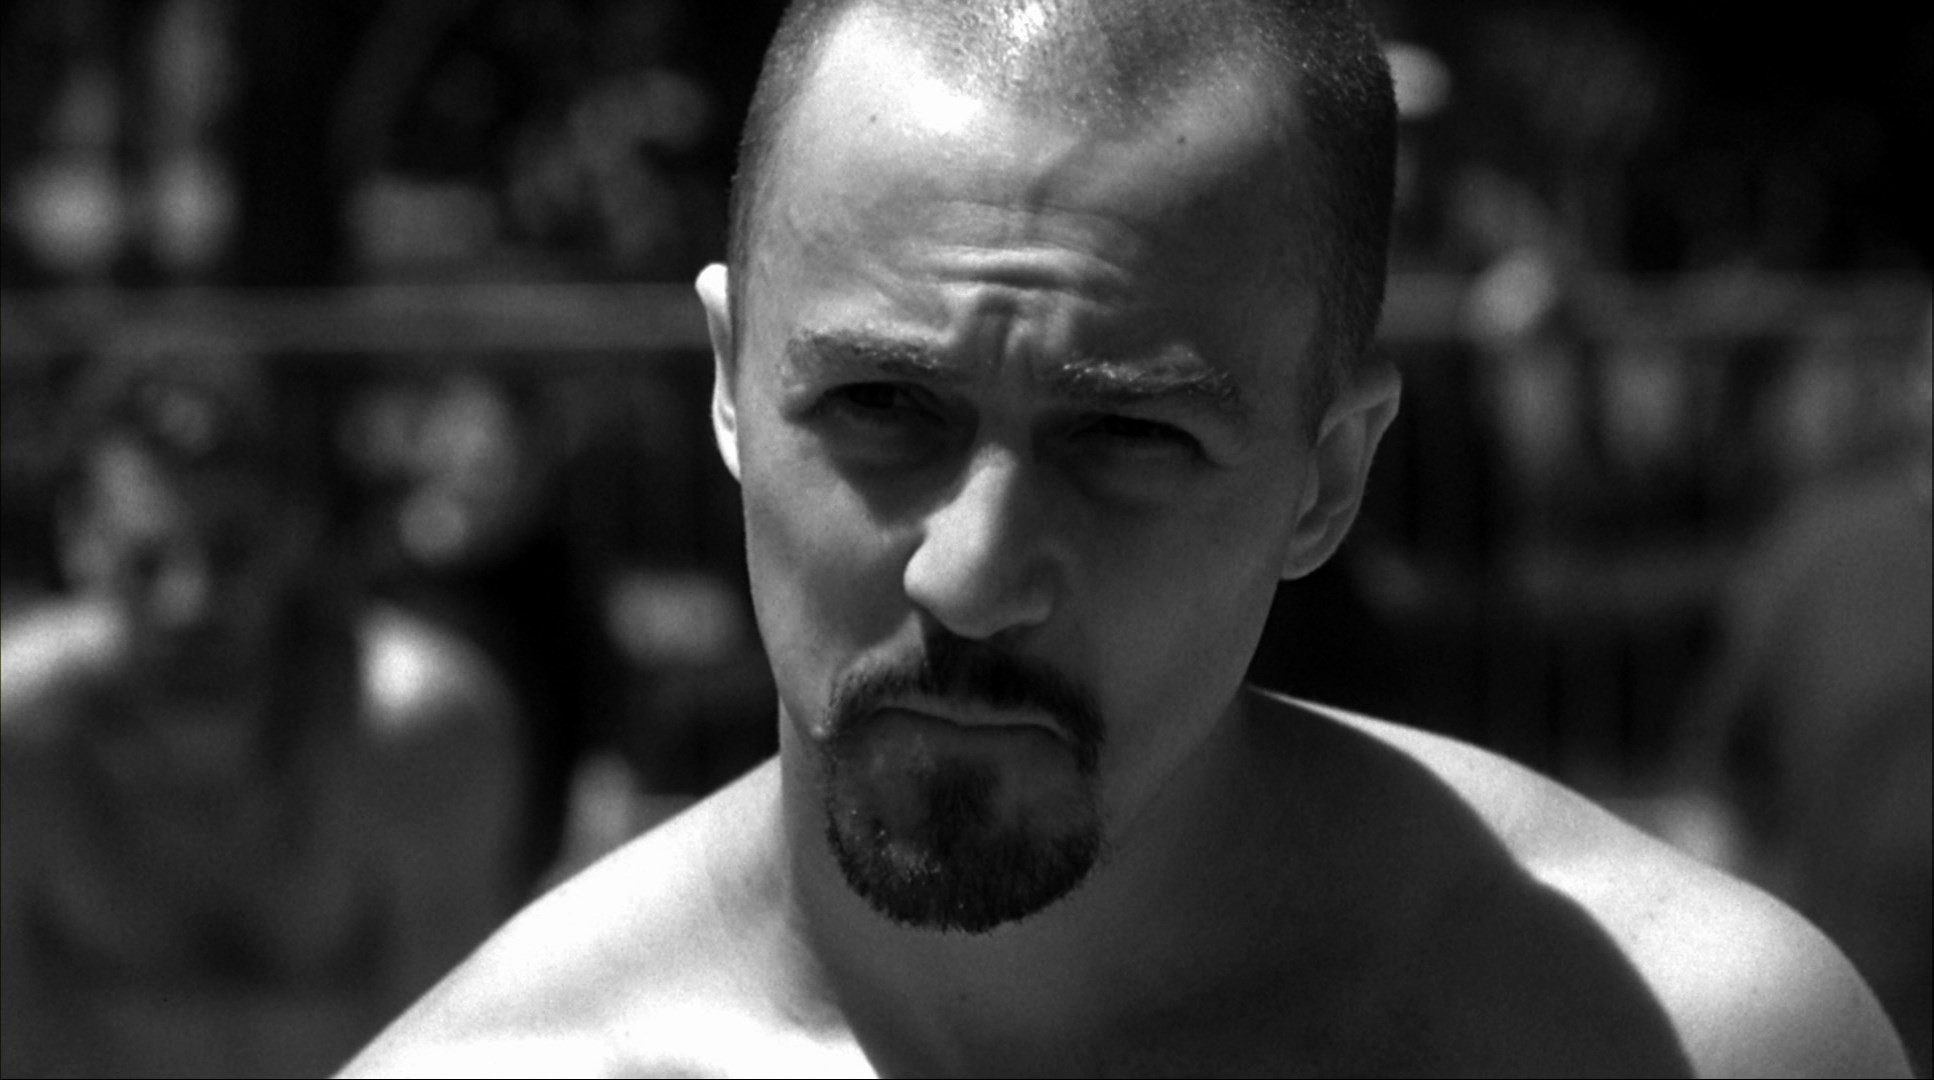 1934x1080 2016-05-14 - american history x backgrounds for widescreen, #123197